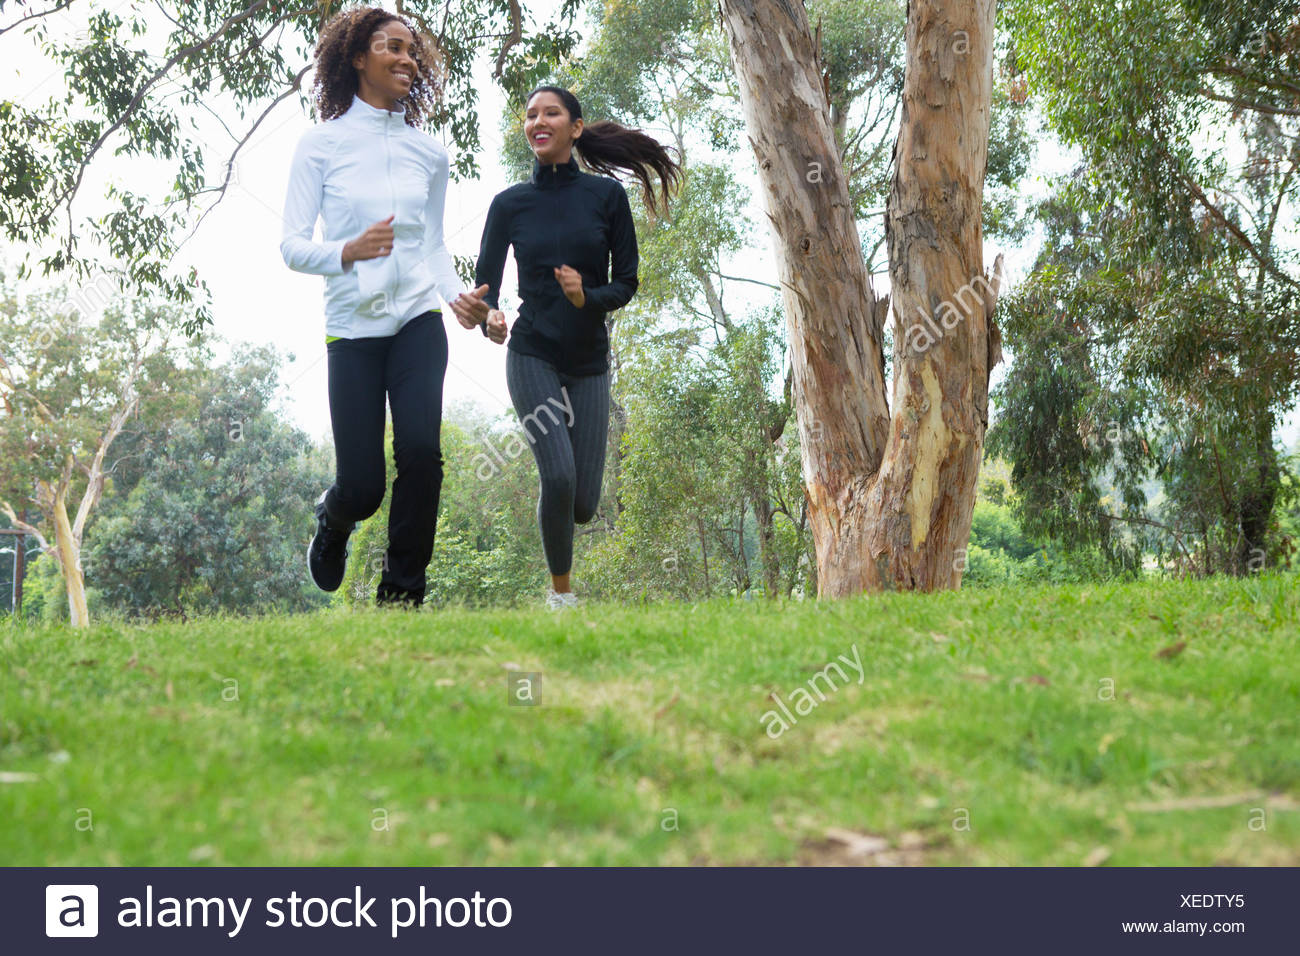 Young and mid adult woman jogging together Stock Photo